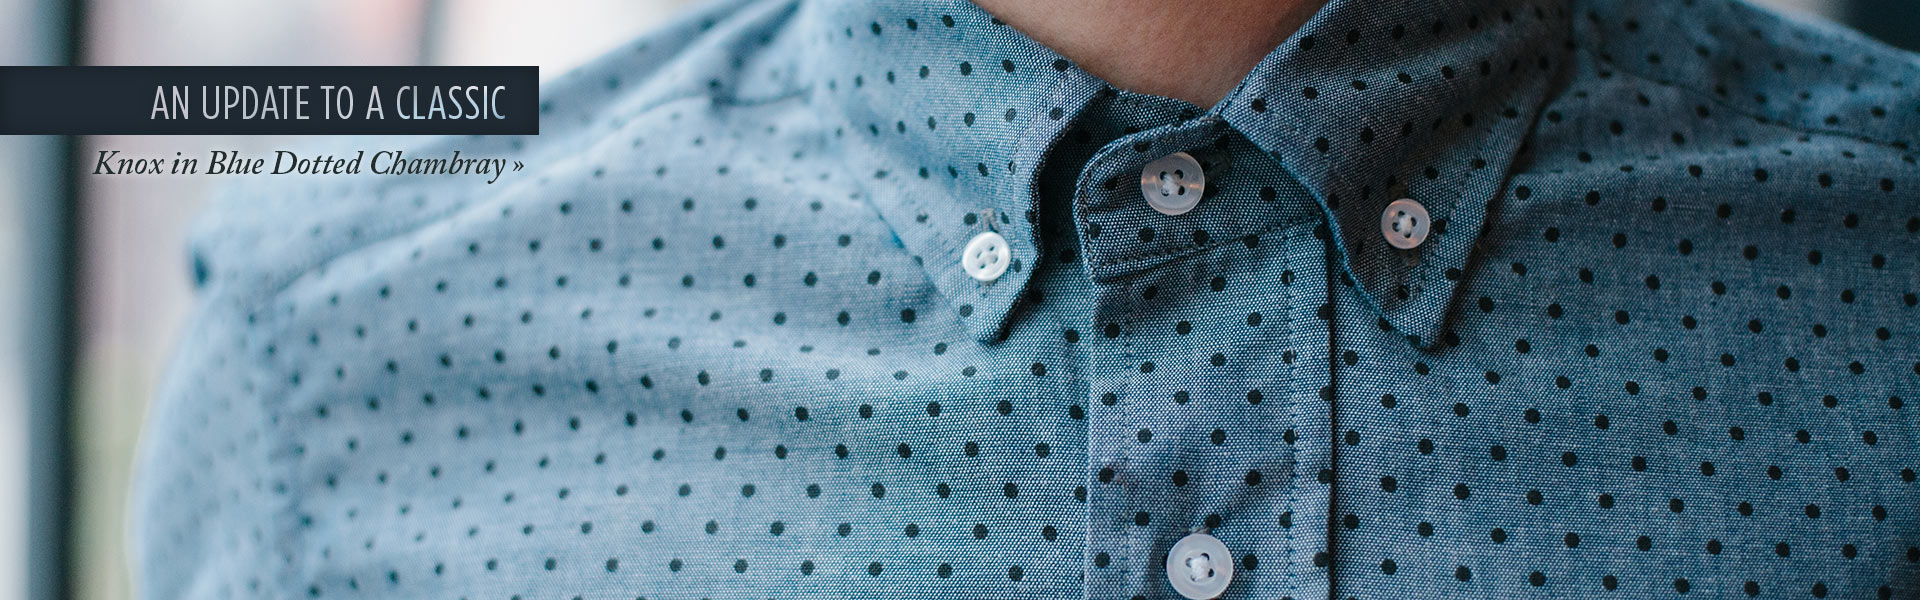 Knox in Blue Dotted Chambray